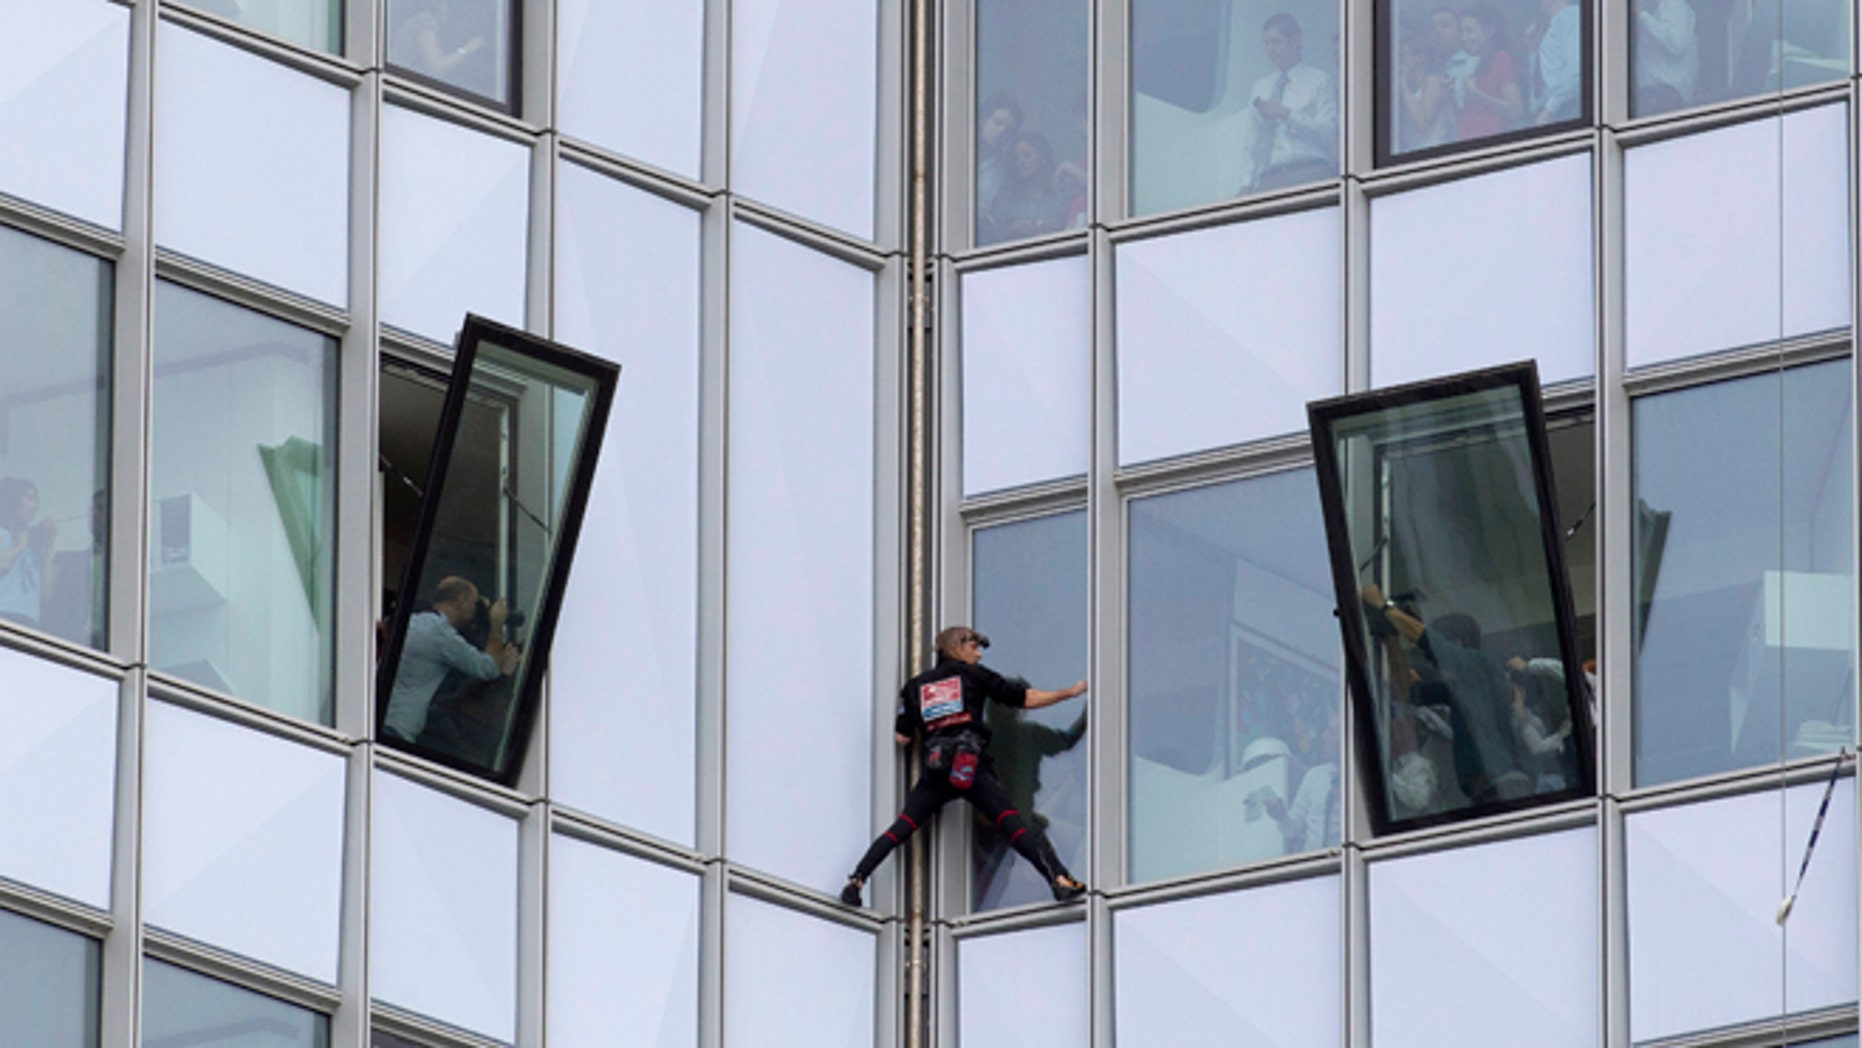 May 10, 2012: People look out of their windows as French urban climber Alain Robert, known as 'Spiderman', climbs up the 758 feet high First Tower, the tallest skyscraper in France, outside Paris.